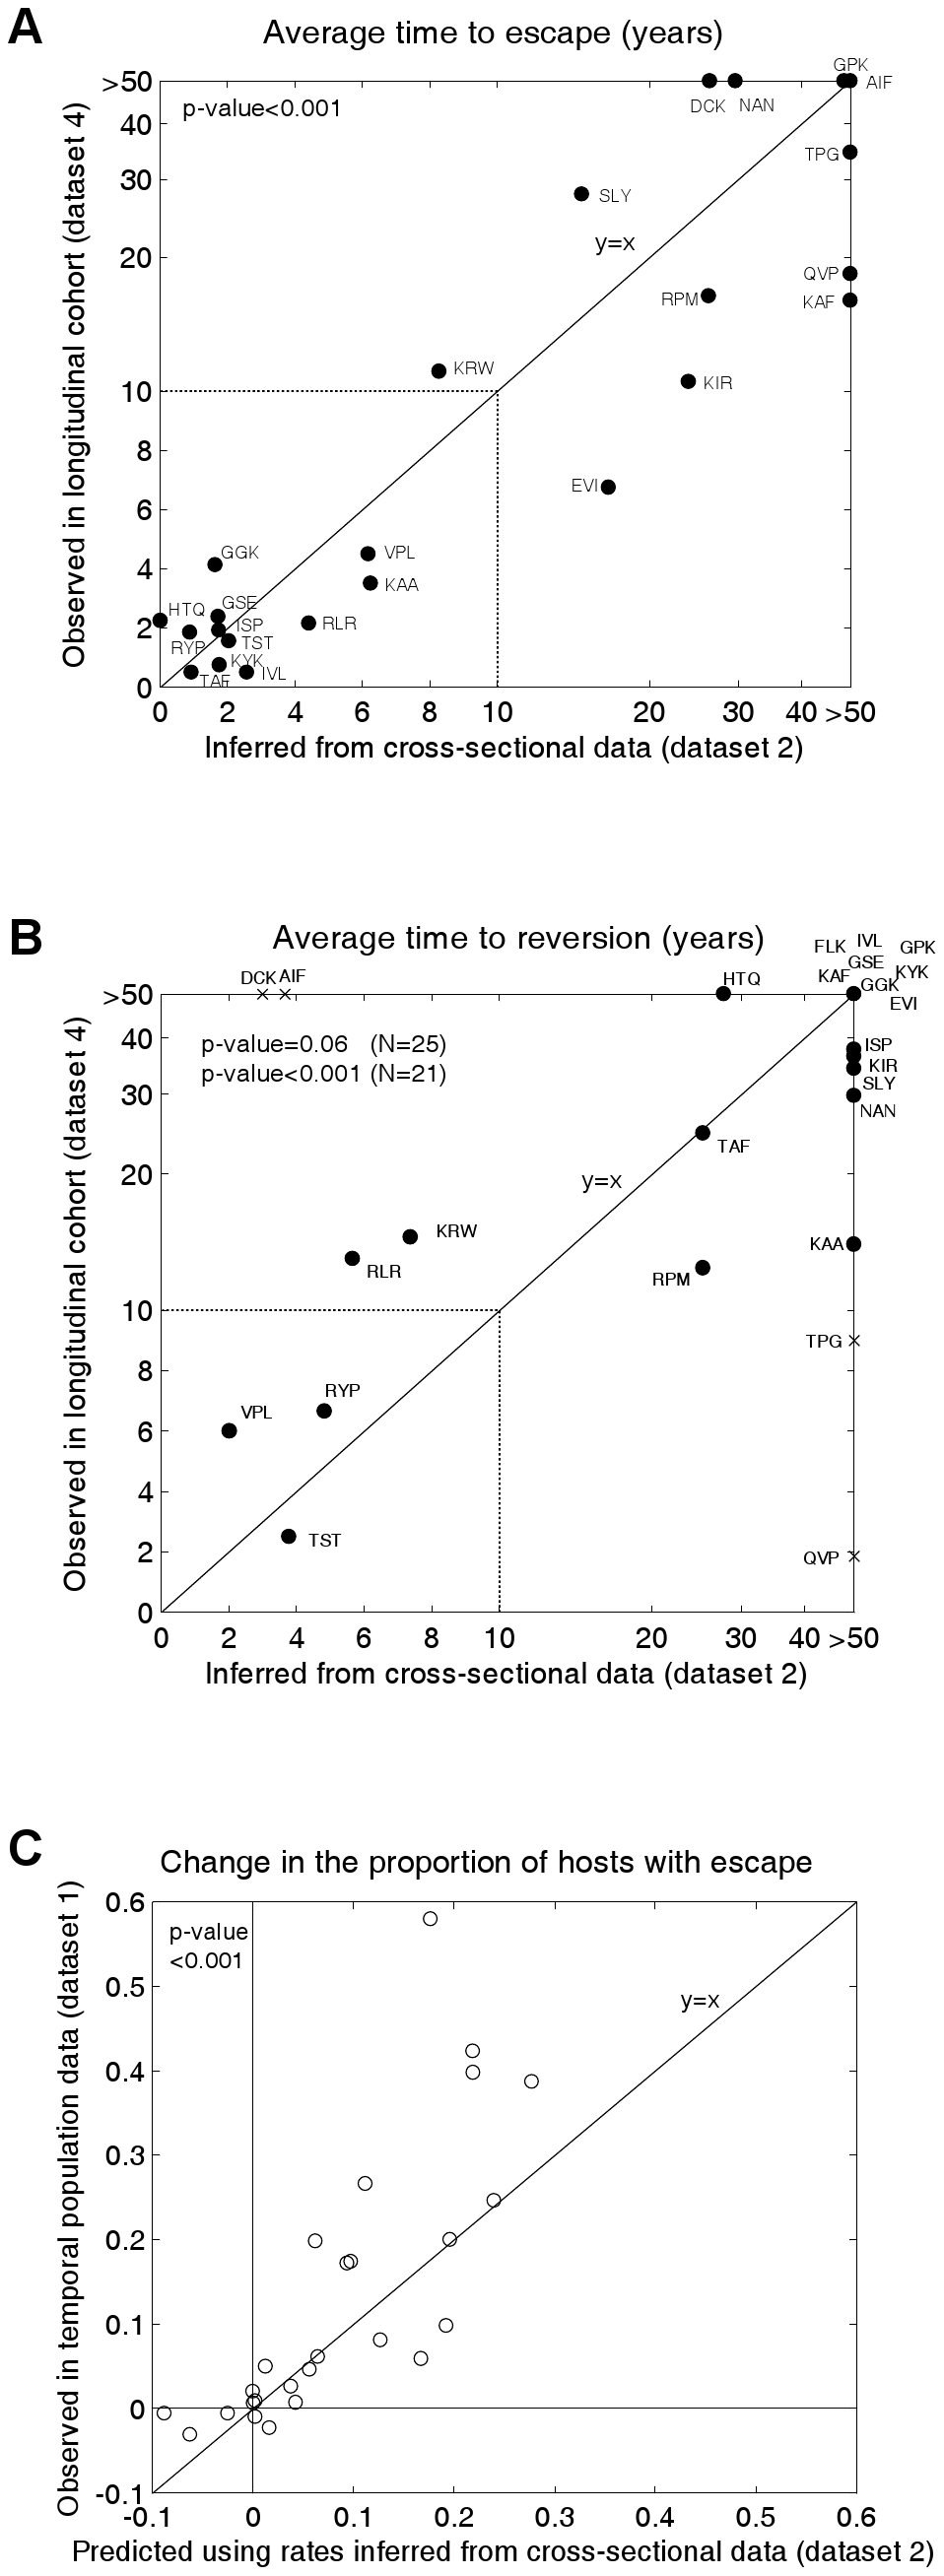 Observed and inferred escape rates, reversion rates and changes in escape prevalence.